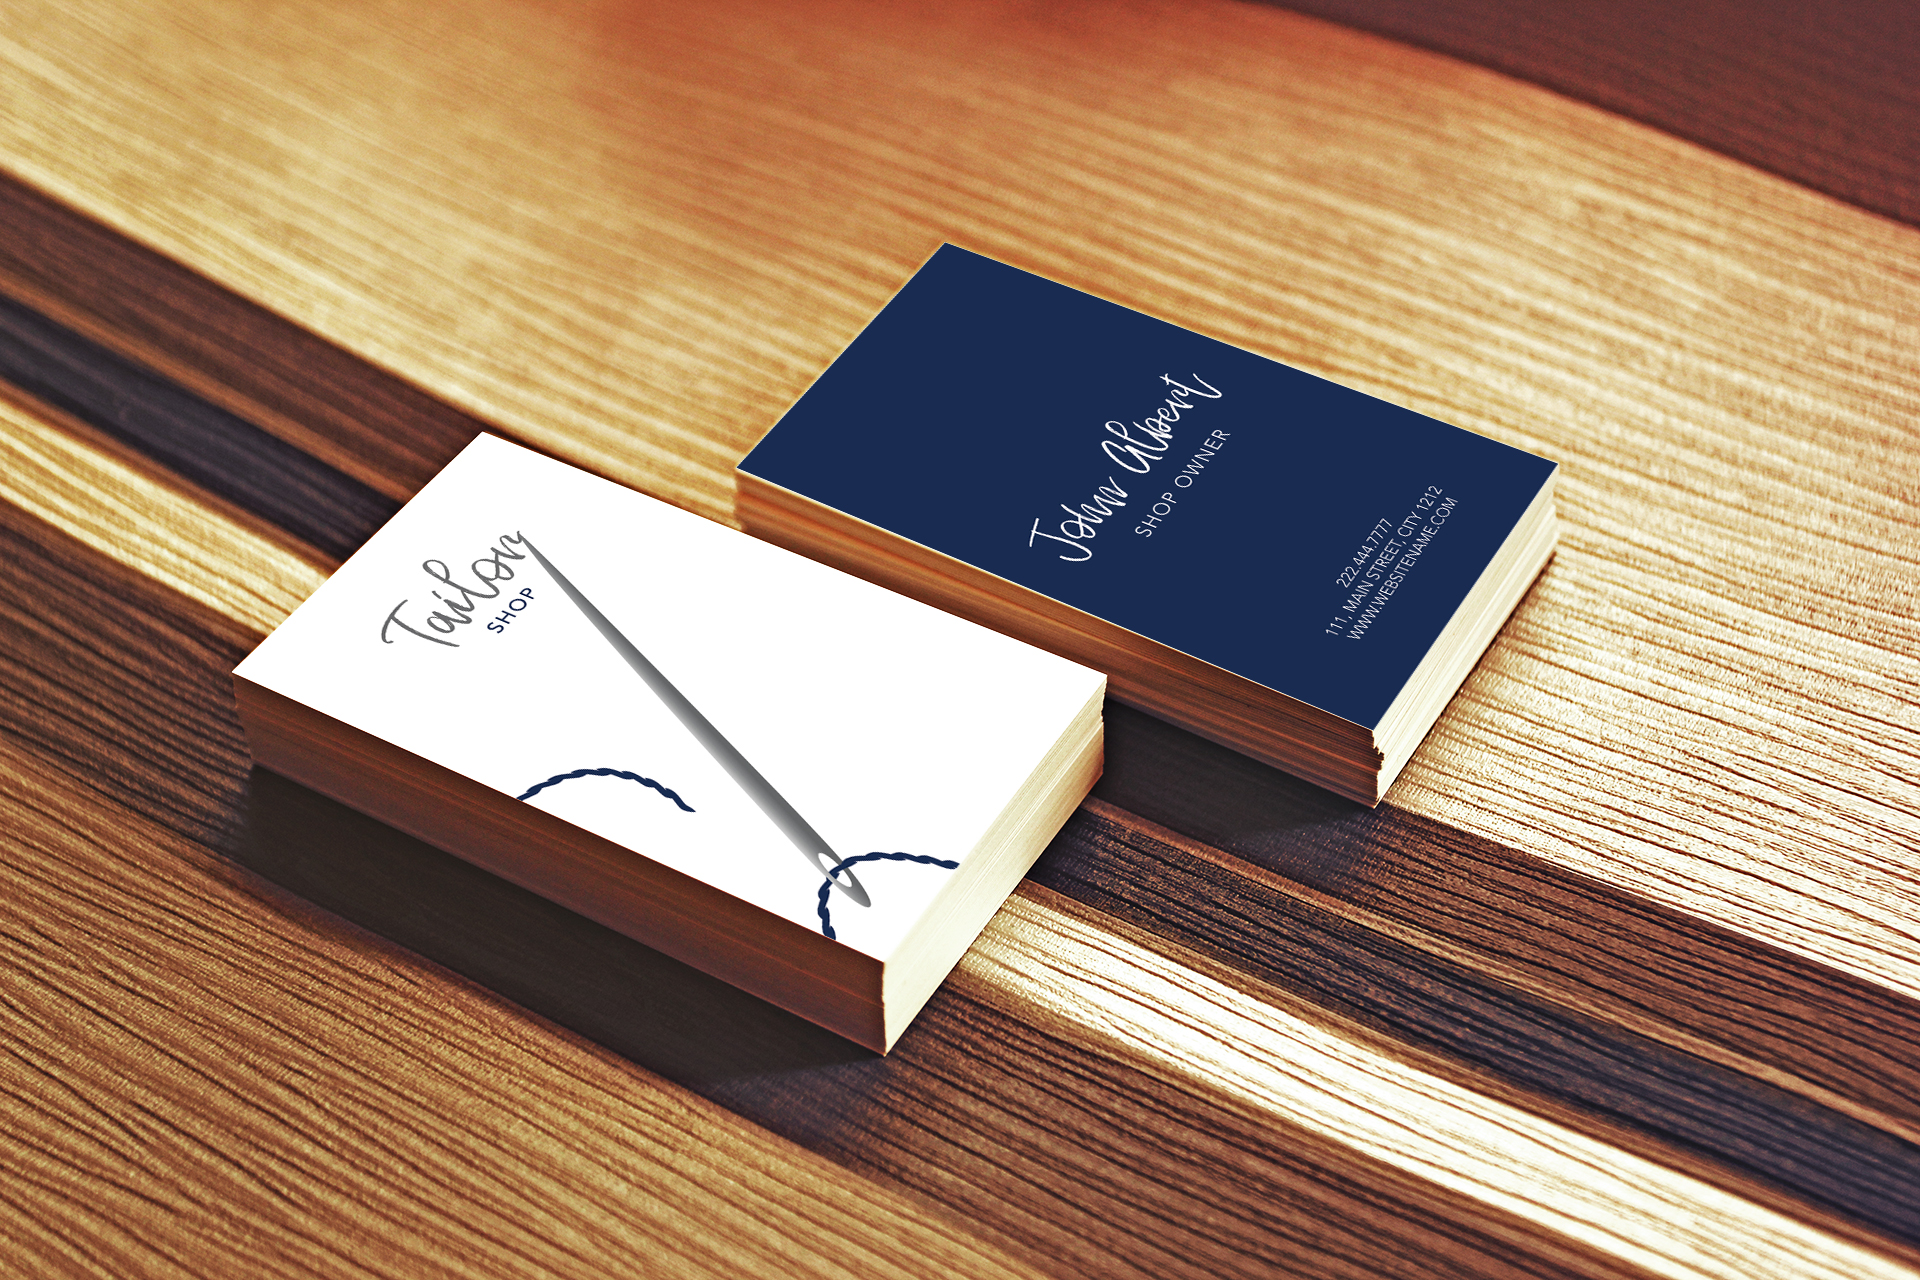 Tailor shop creative business card example image 3